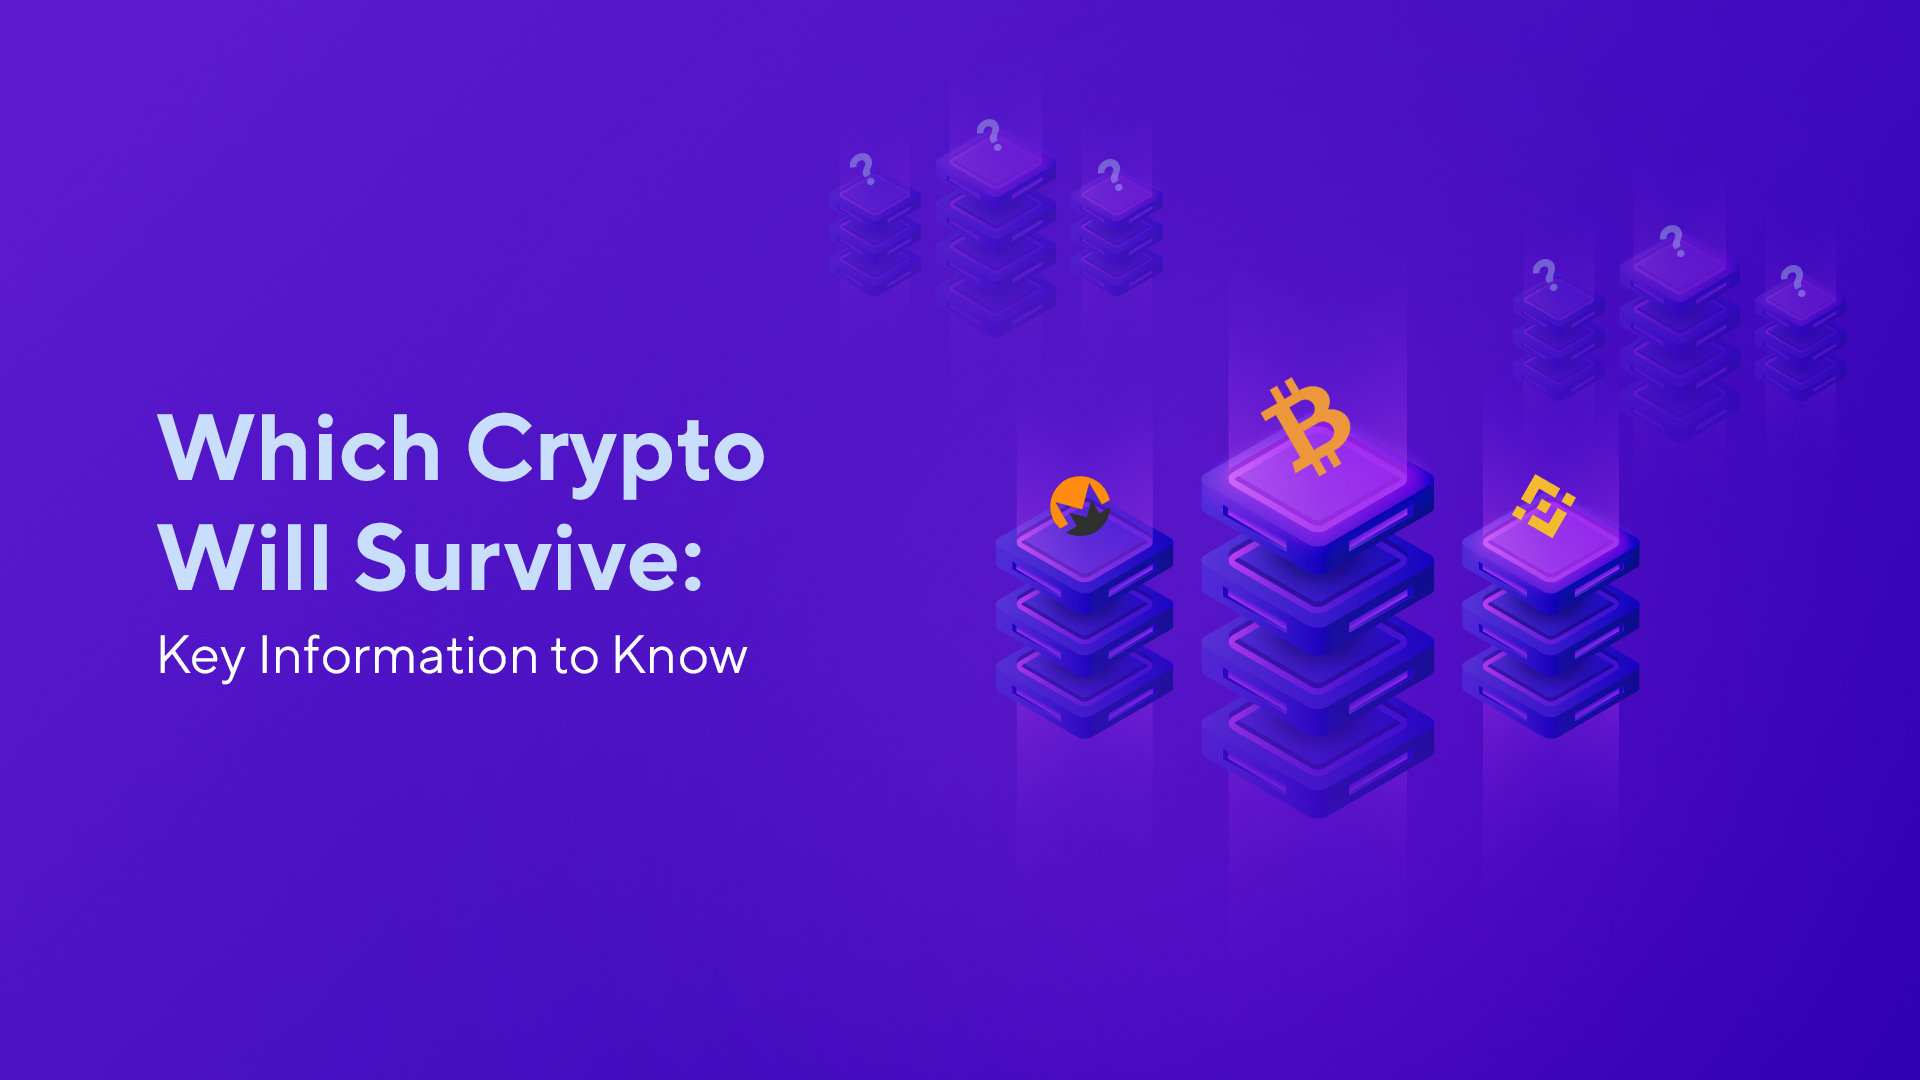 Which Crypto Will Survive: Key Information to Know